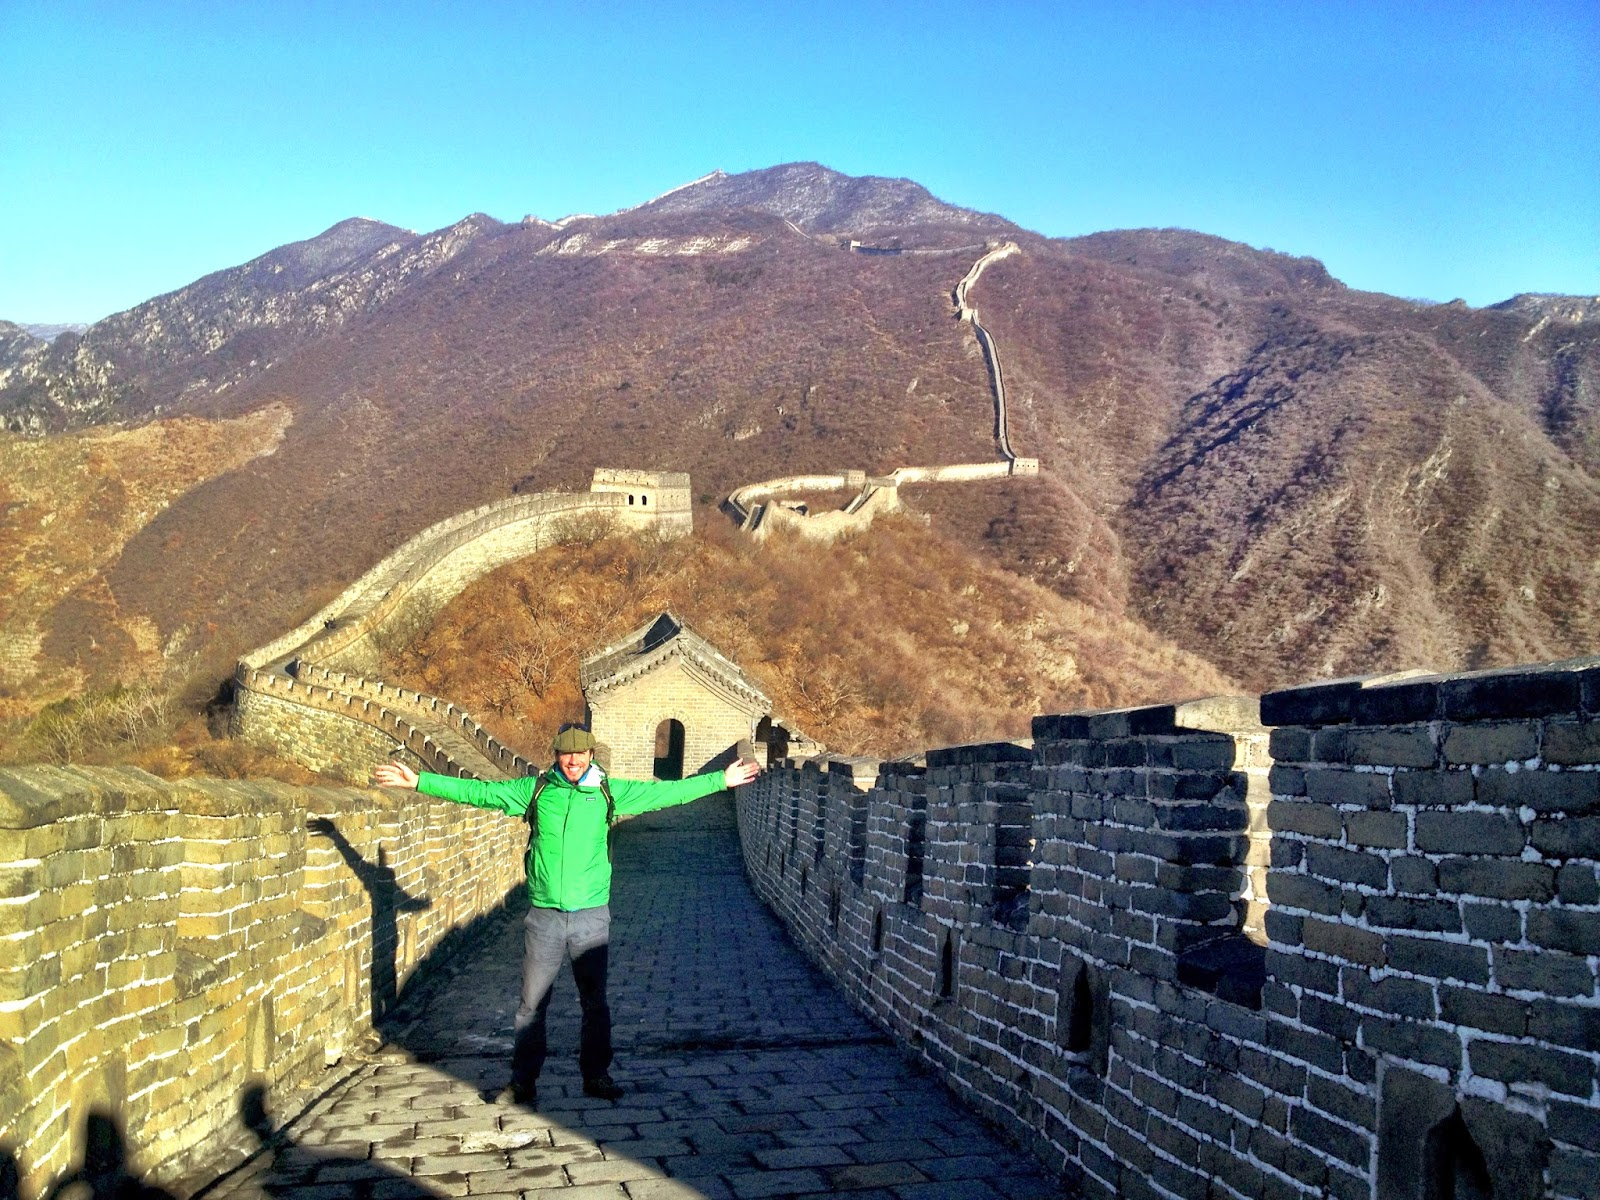 Standing in the sun on The Great Wall Of China